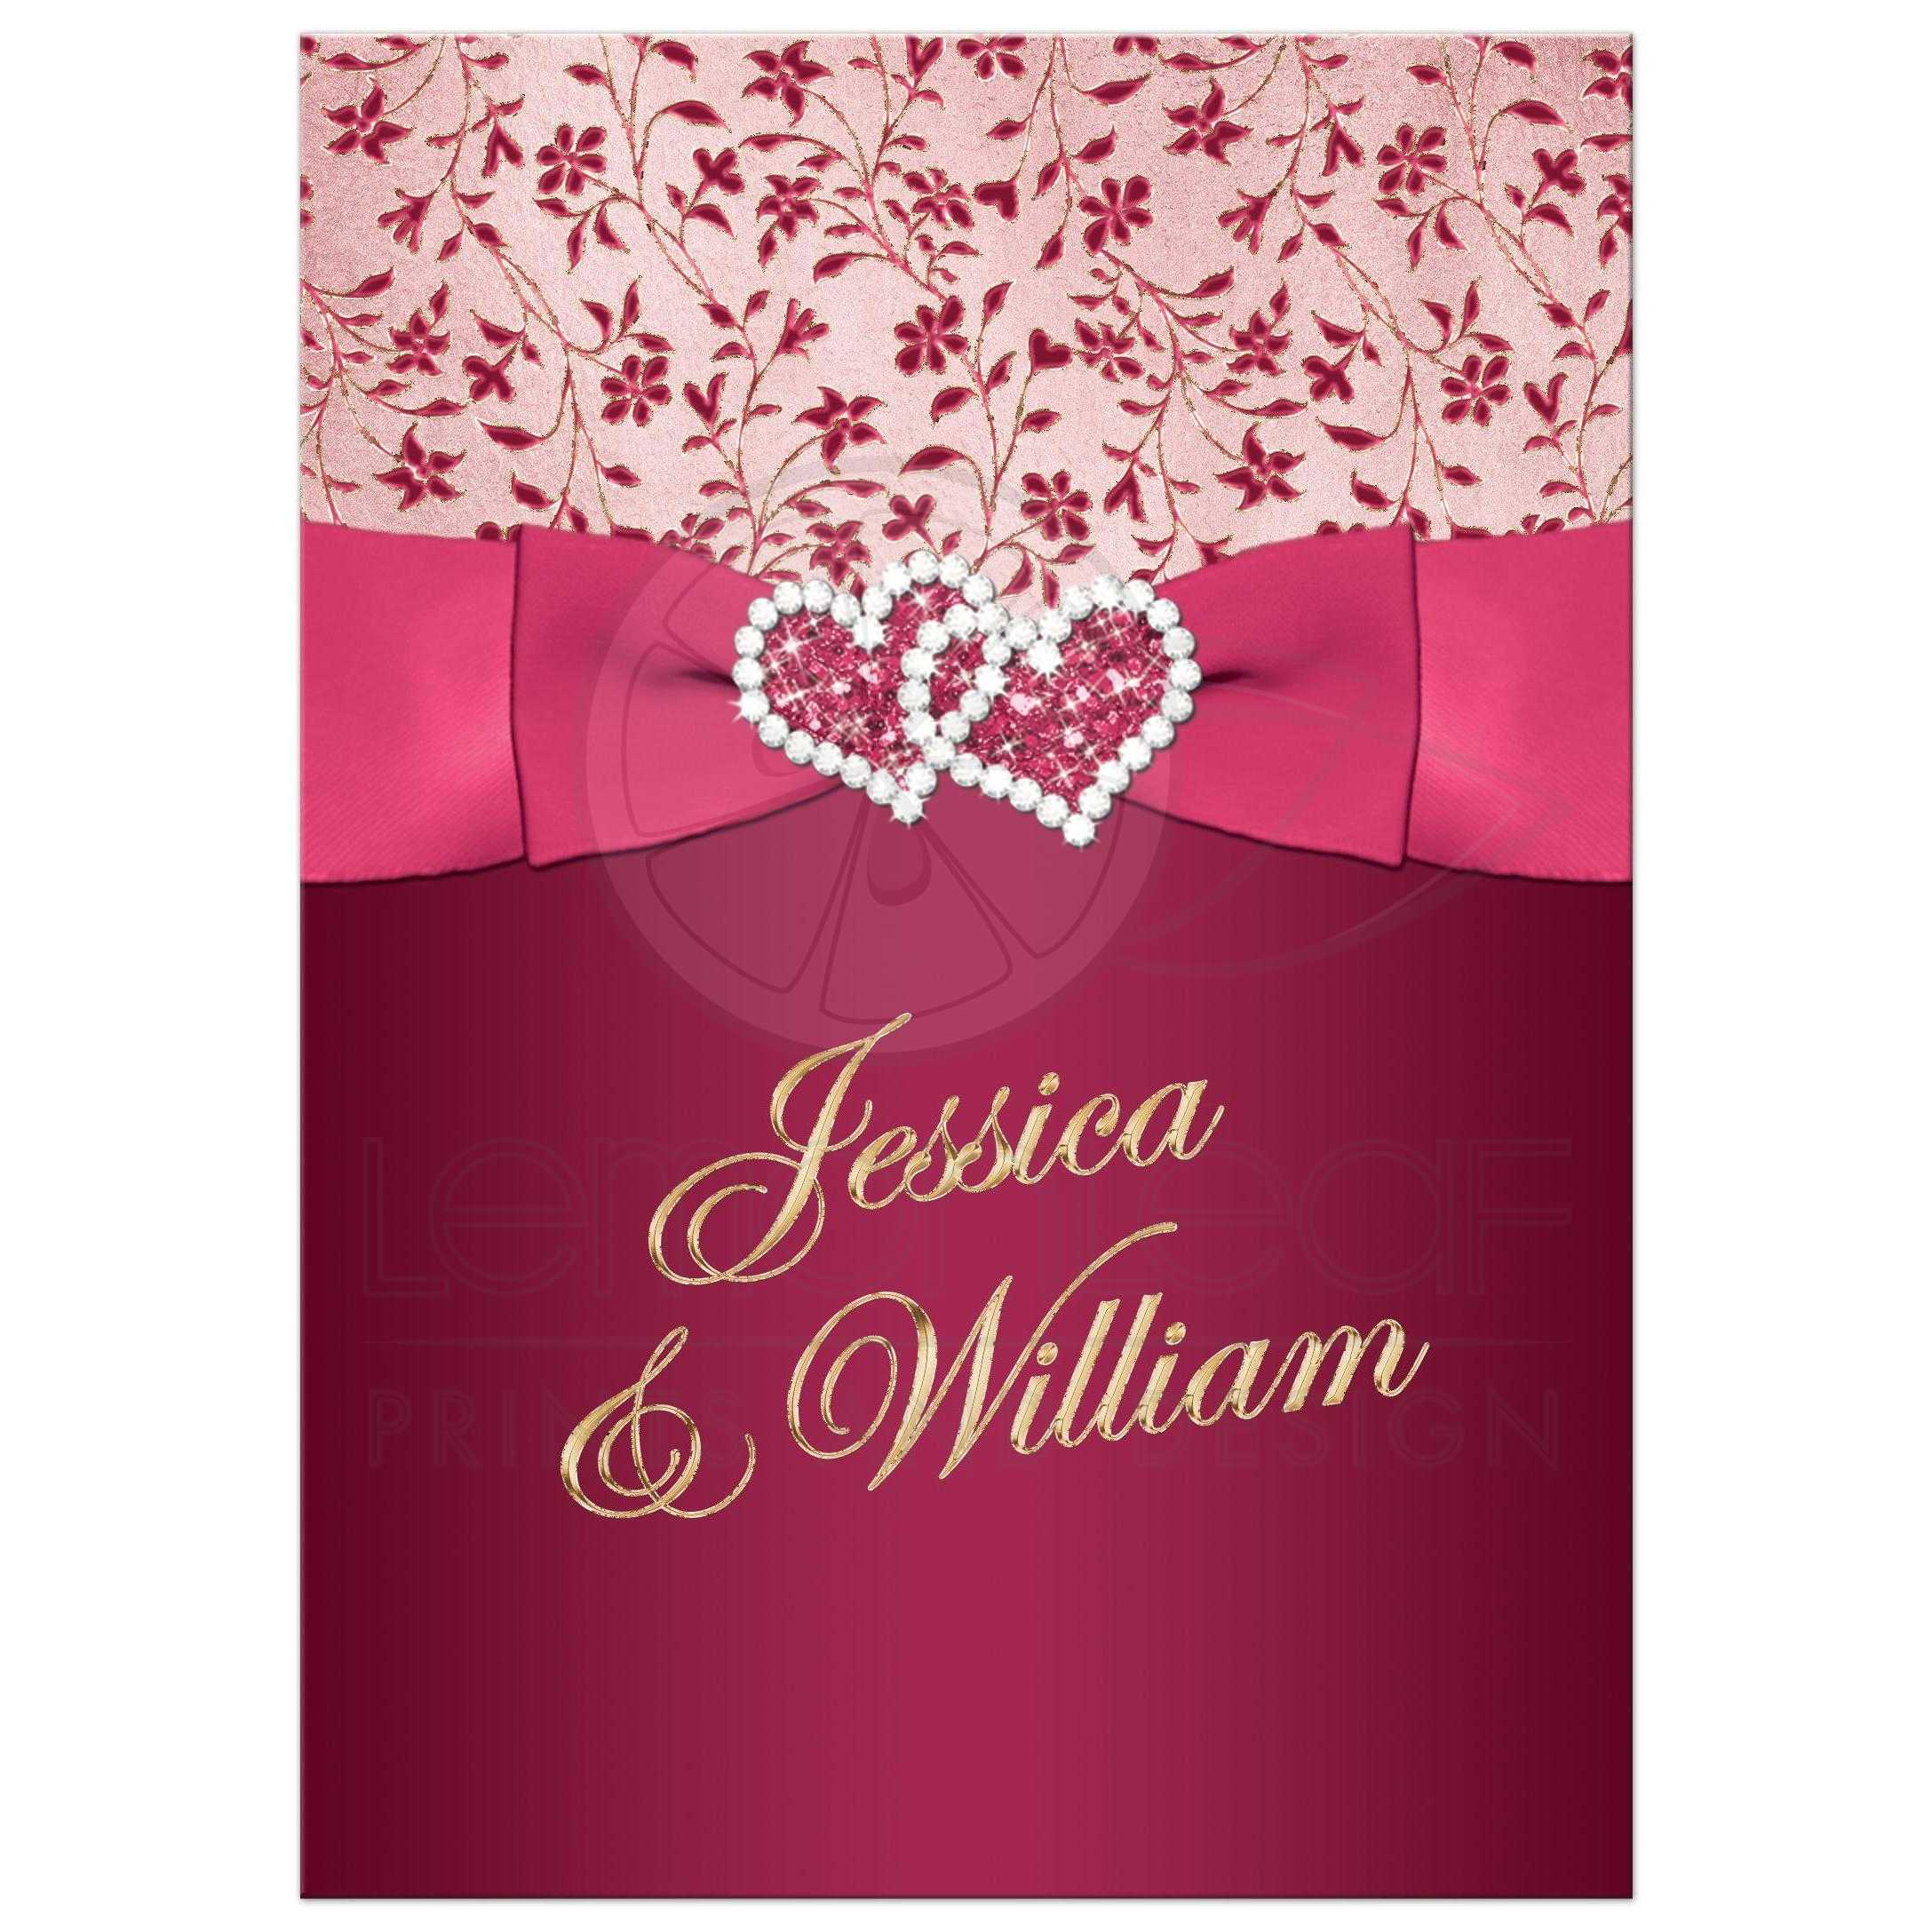 blush and rose gold wedding invitations burgundy wedding invitations ideas burgundy and gold wedding invitations wedding invitation burgundy pink rose gold floral printed great and